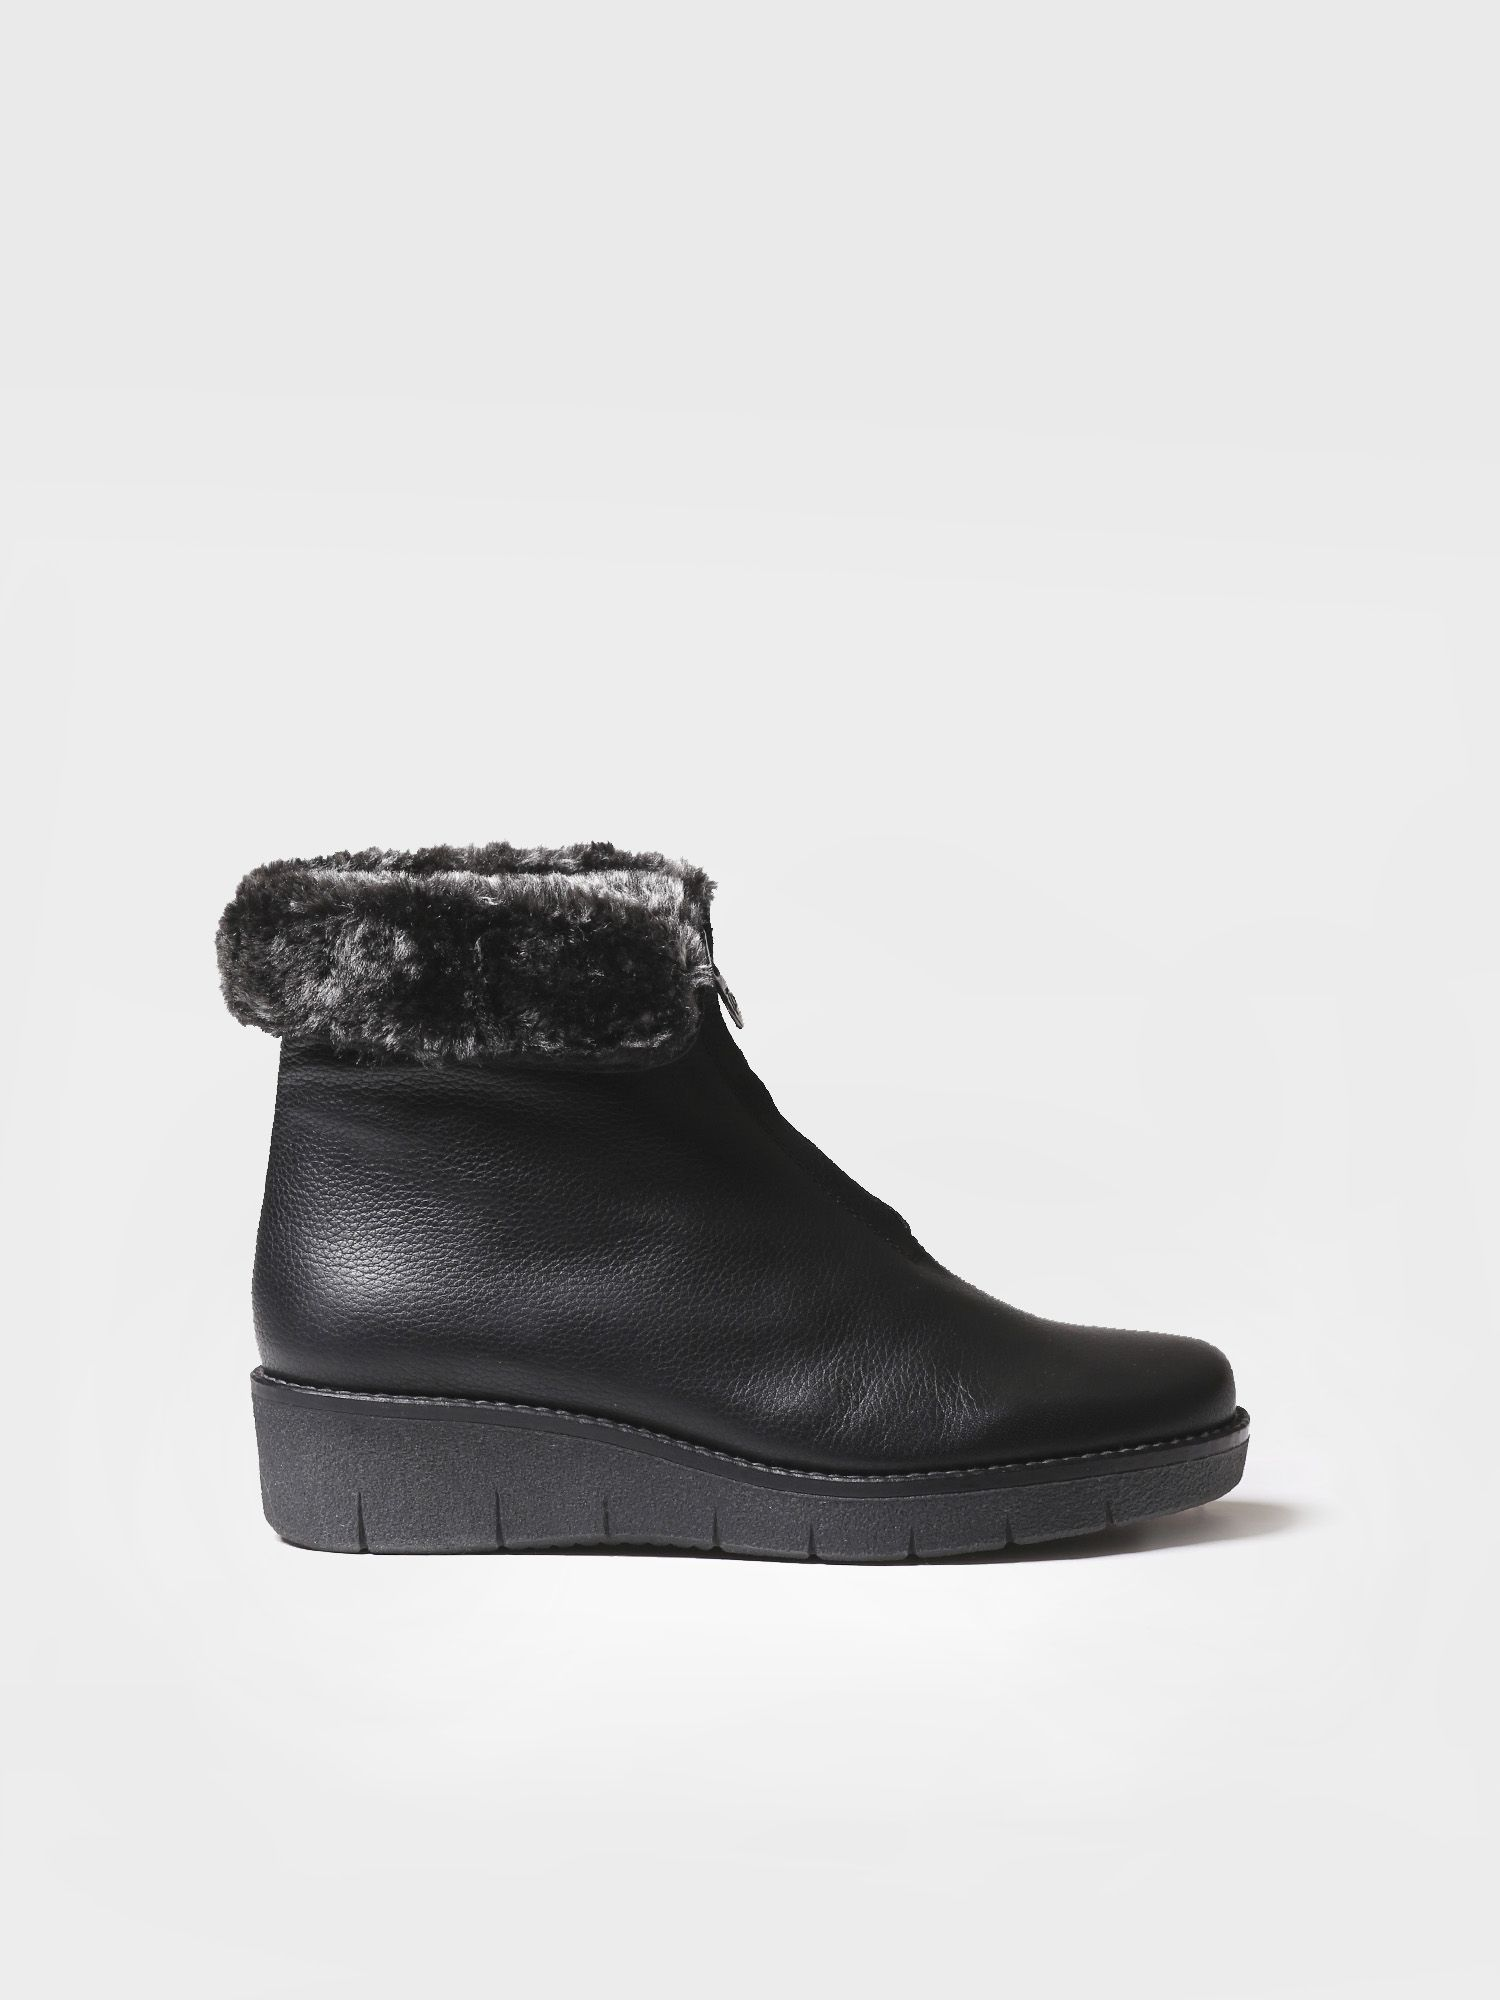 Leather booties with fur lining - ARCALIS-PO